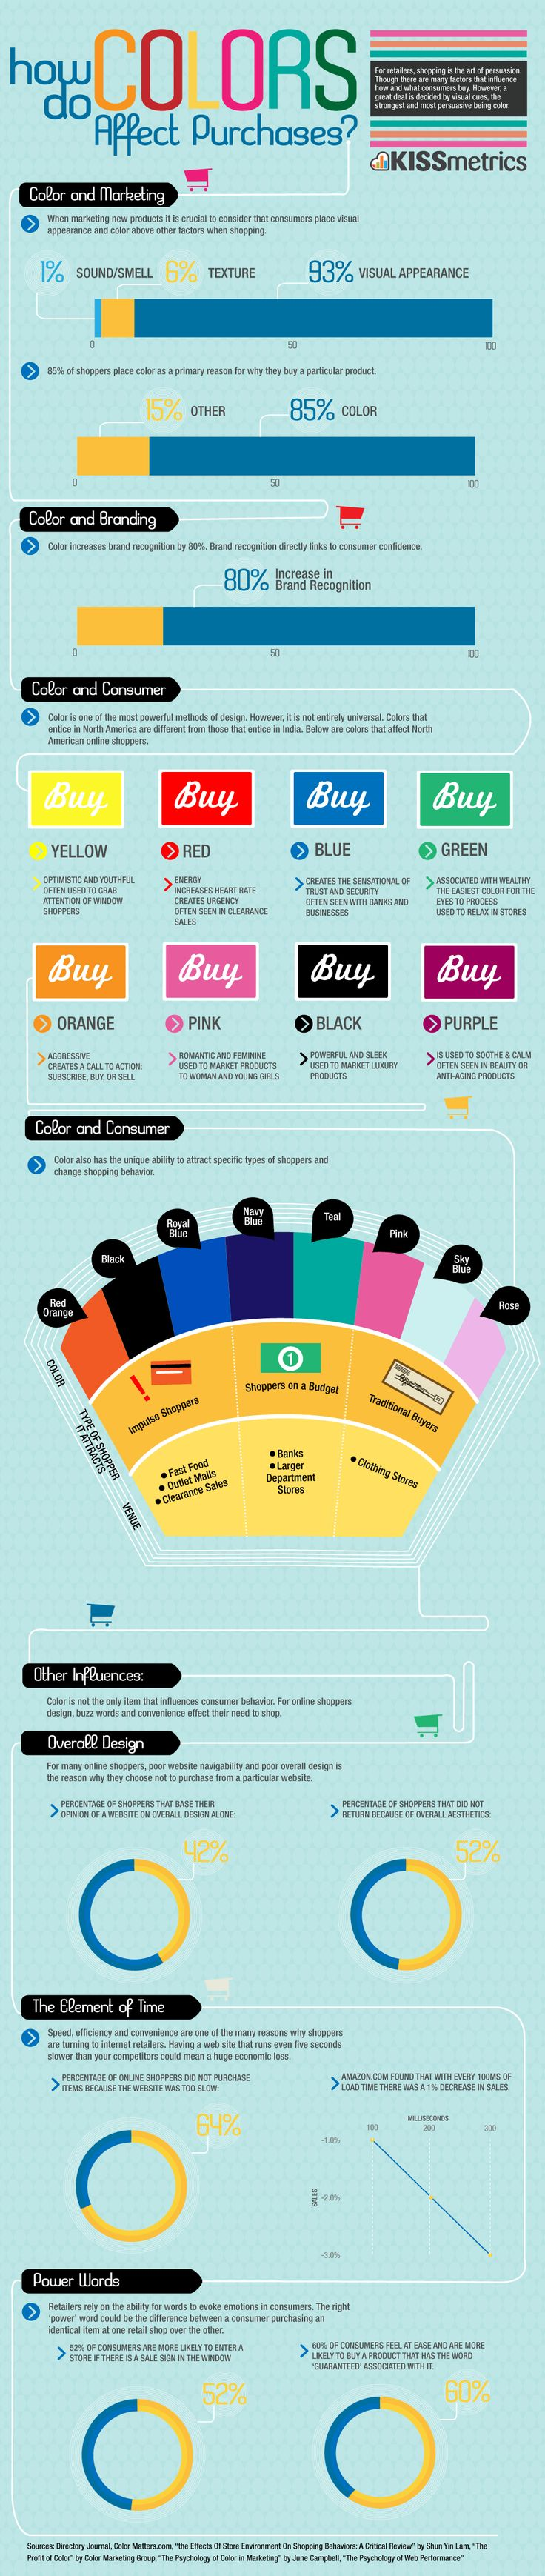 The Role of Color in Marketing [Infographics] - Pamorama | Social Media Marketing Blog...very interesting